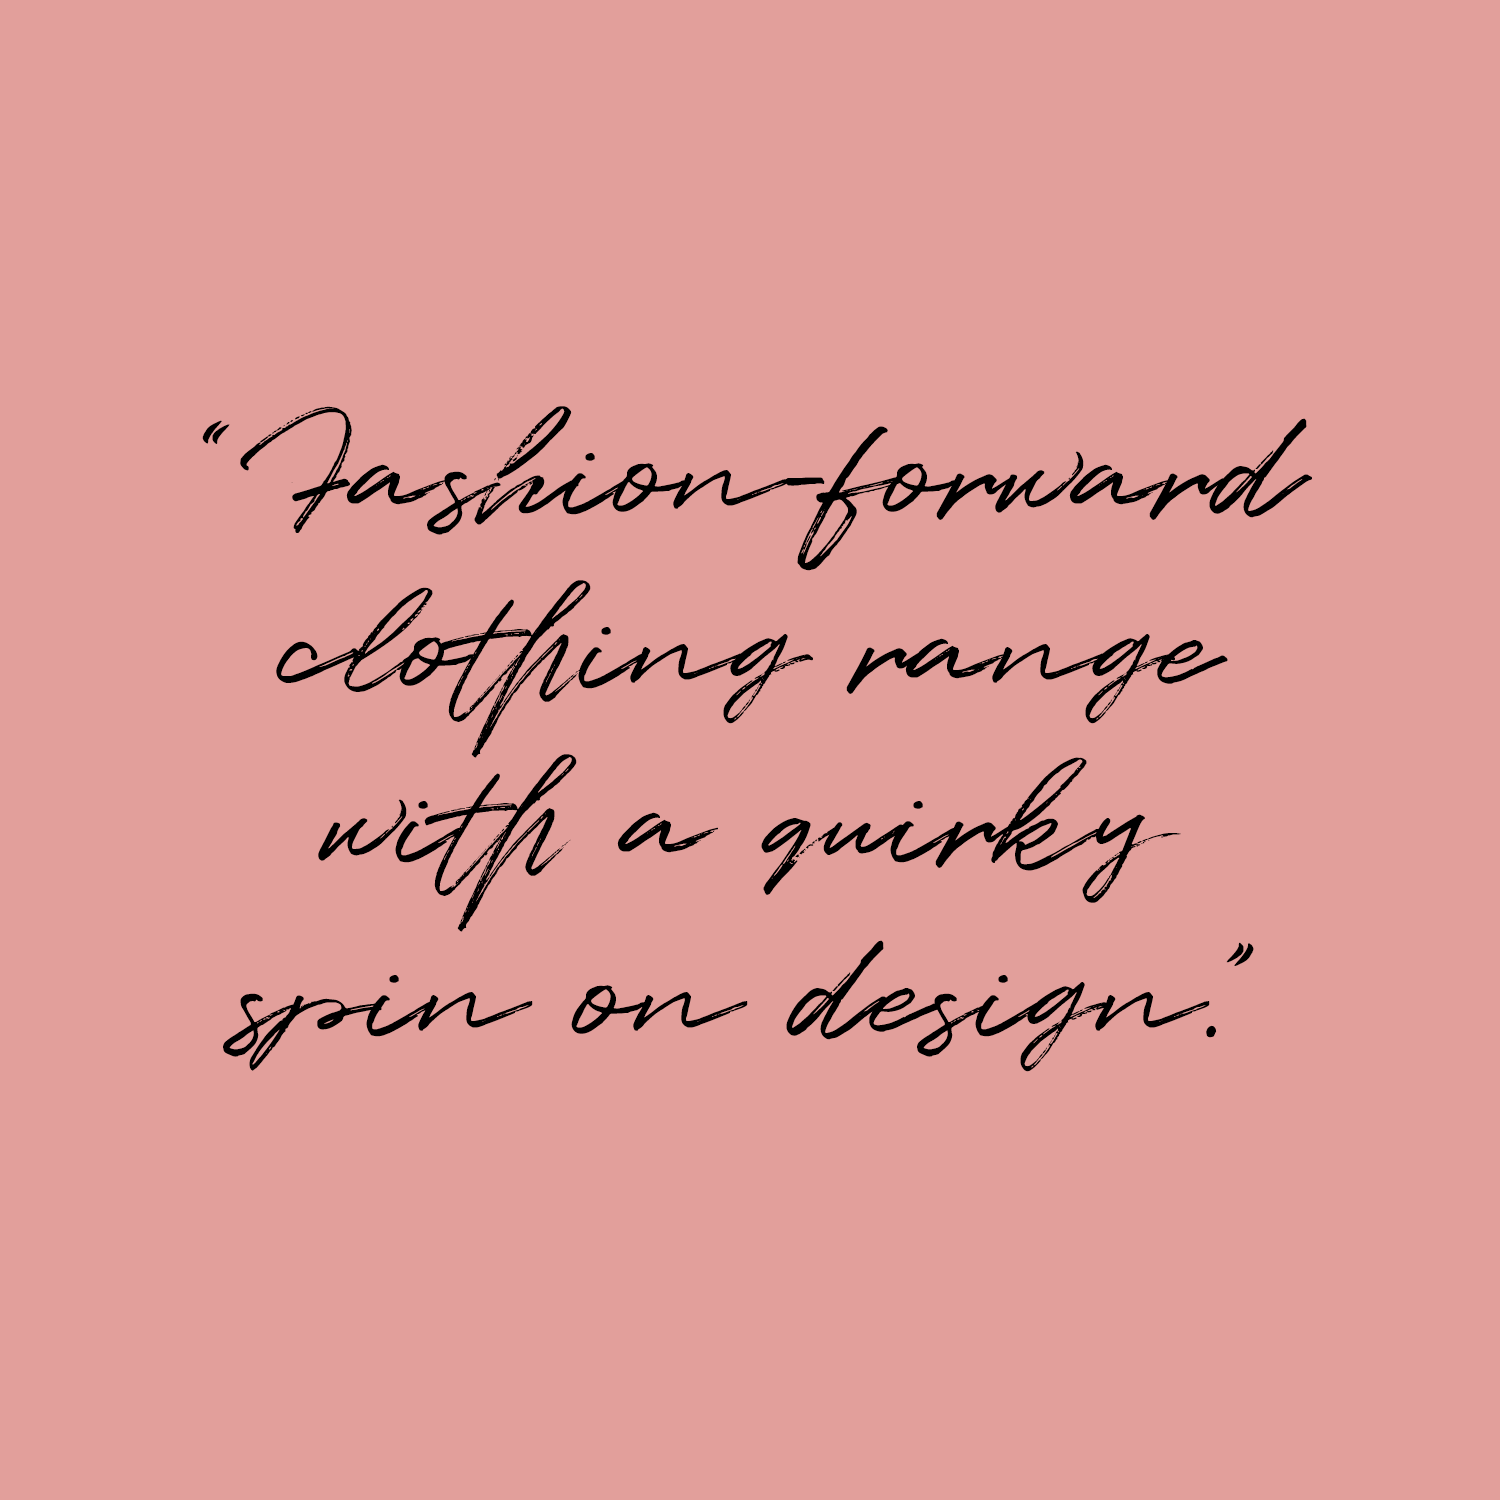 French Connection quote: fashion forward clothing range with a spin on deisgn.